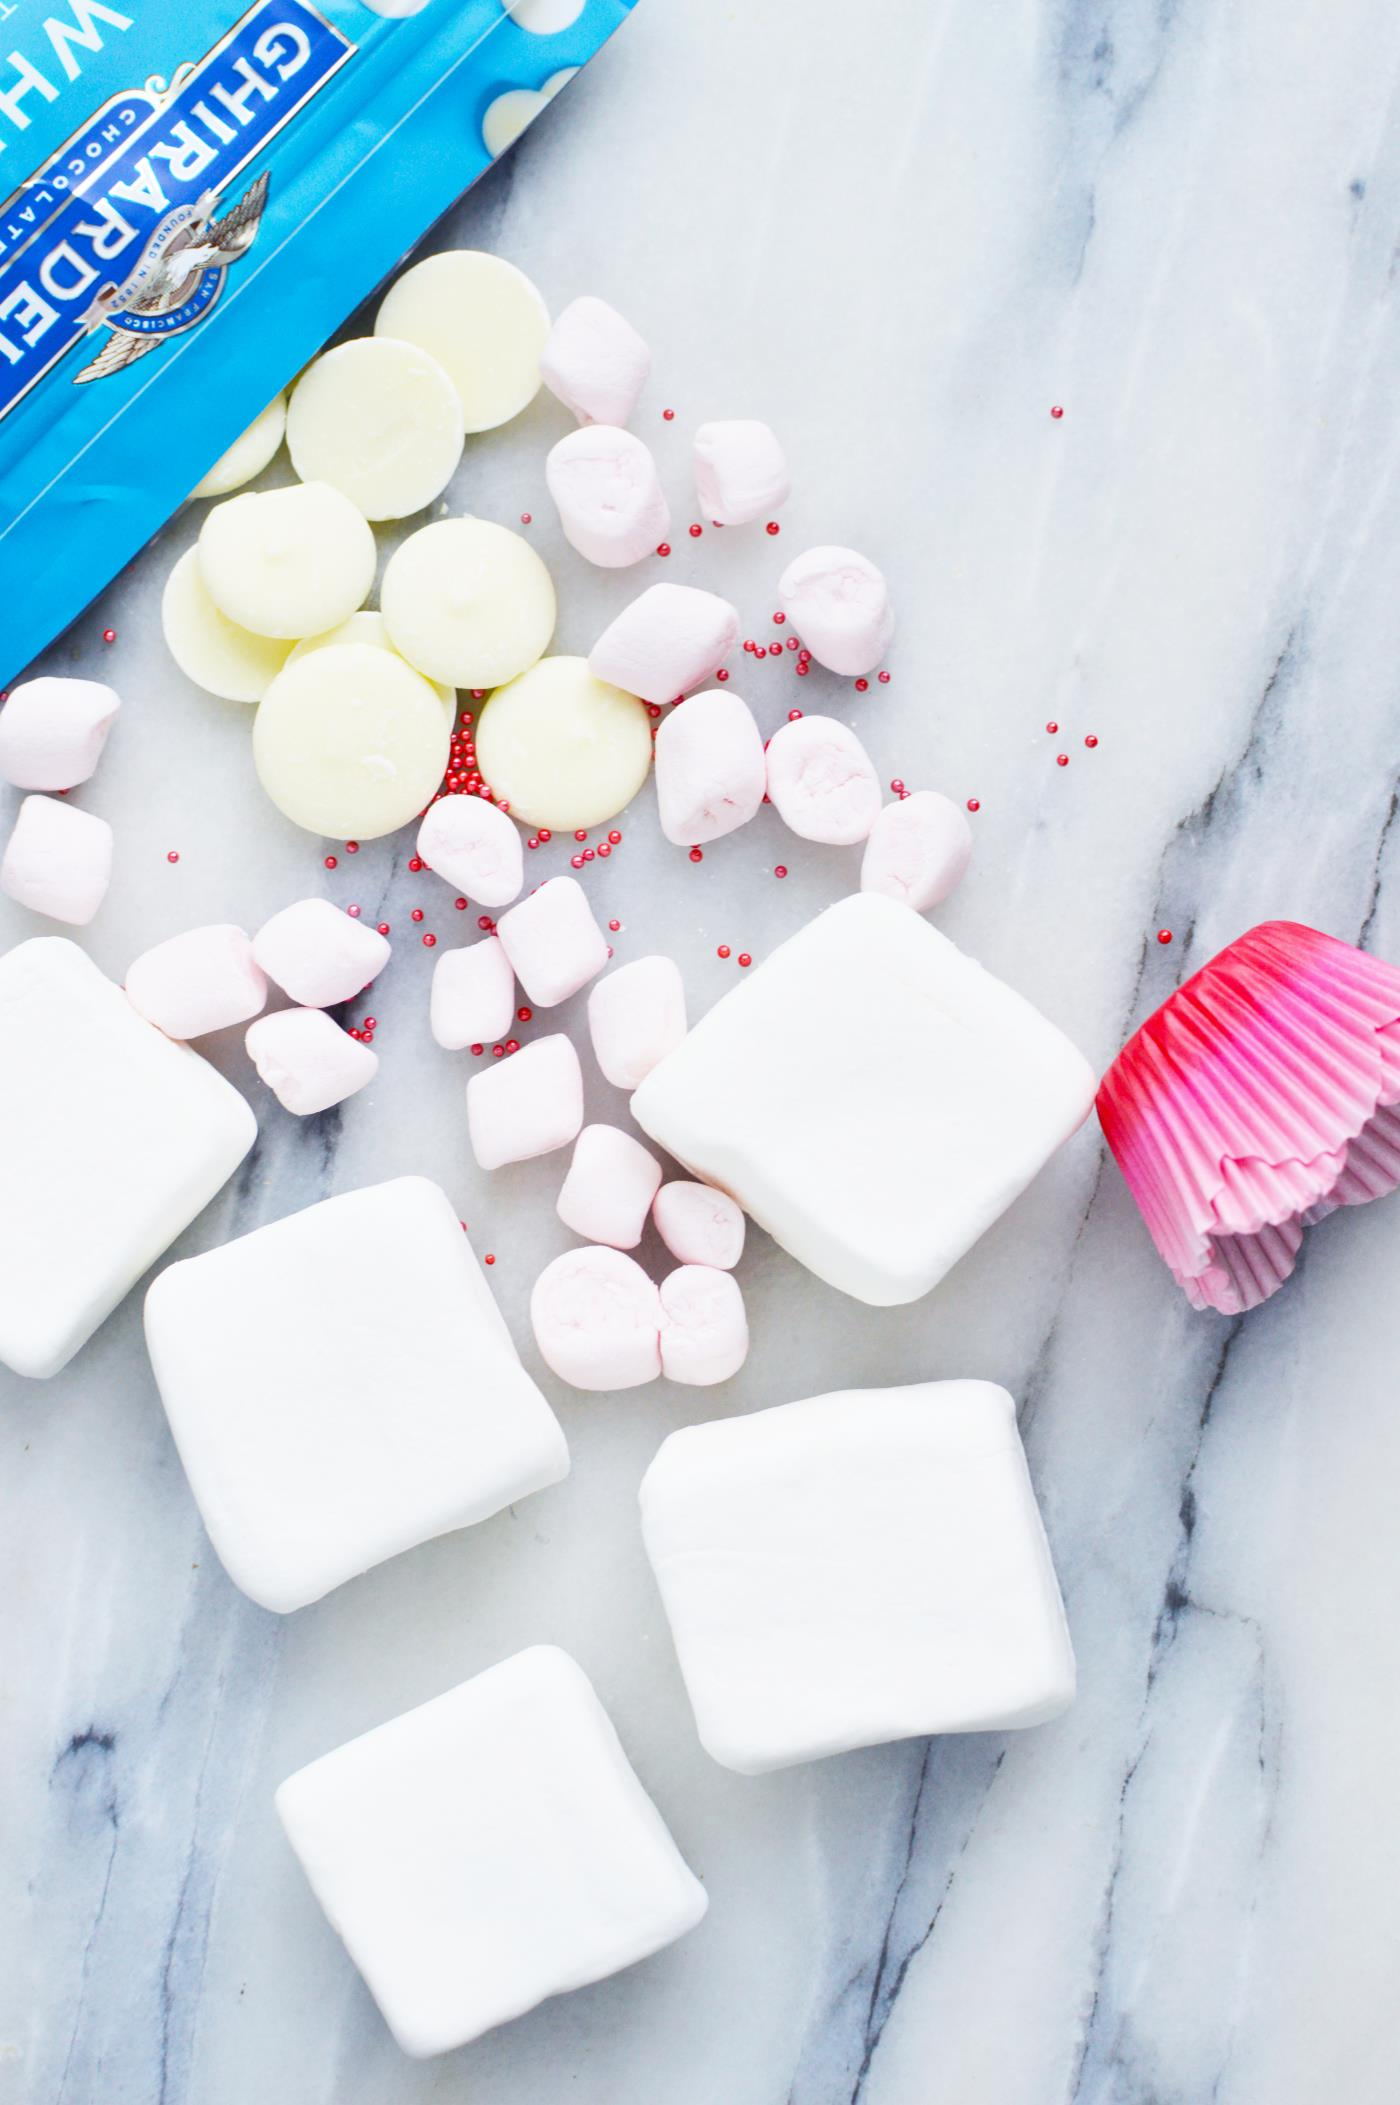 white-chocolate-dipped-marshmallows-kids-activity-valentines-day-recipe-treat